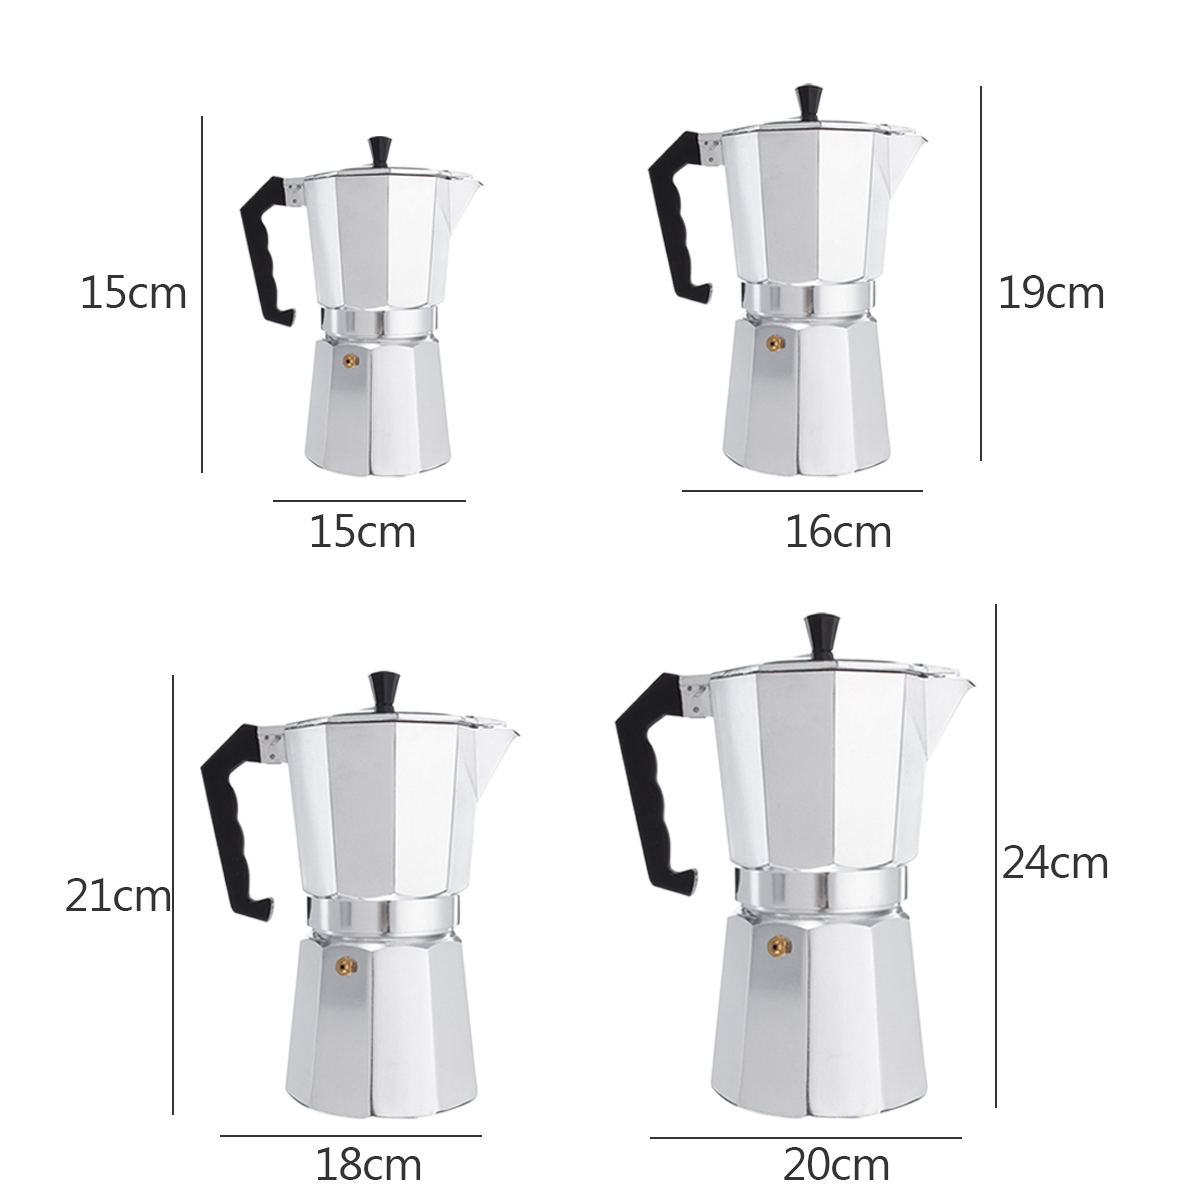 3/6/9/12 Cups Aluminum Espresso Moka Percolator Portable Coffee Maker Stovetop Home DIY 14